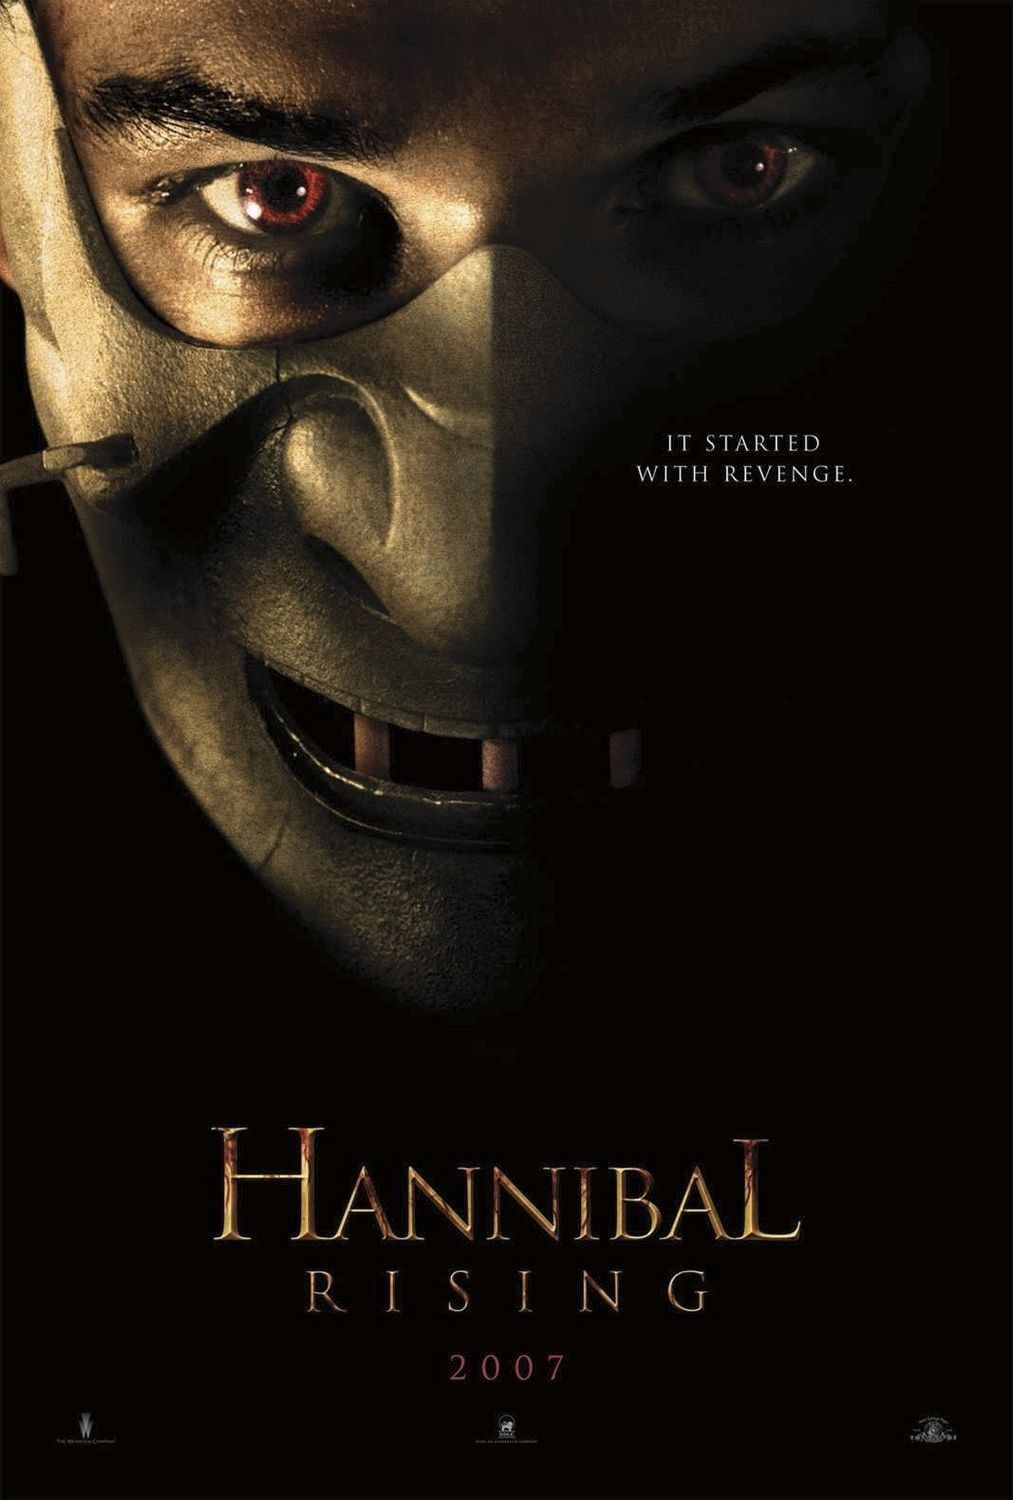 Pin By Biv Bc On Cine Posters Hannibal Rising Best Horror Movies Hannibal